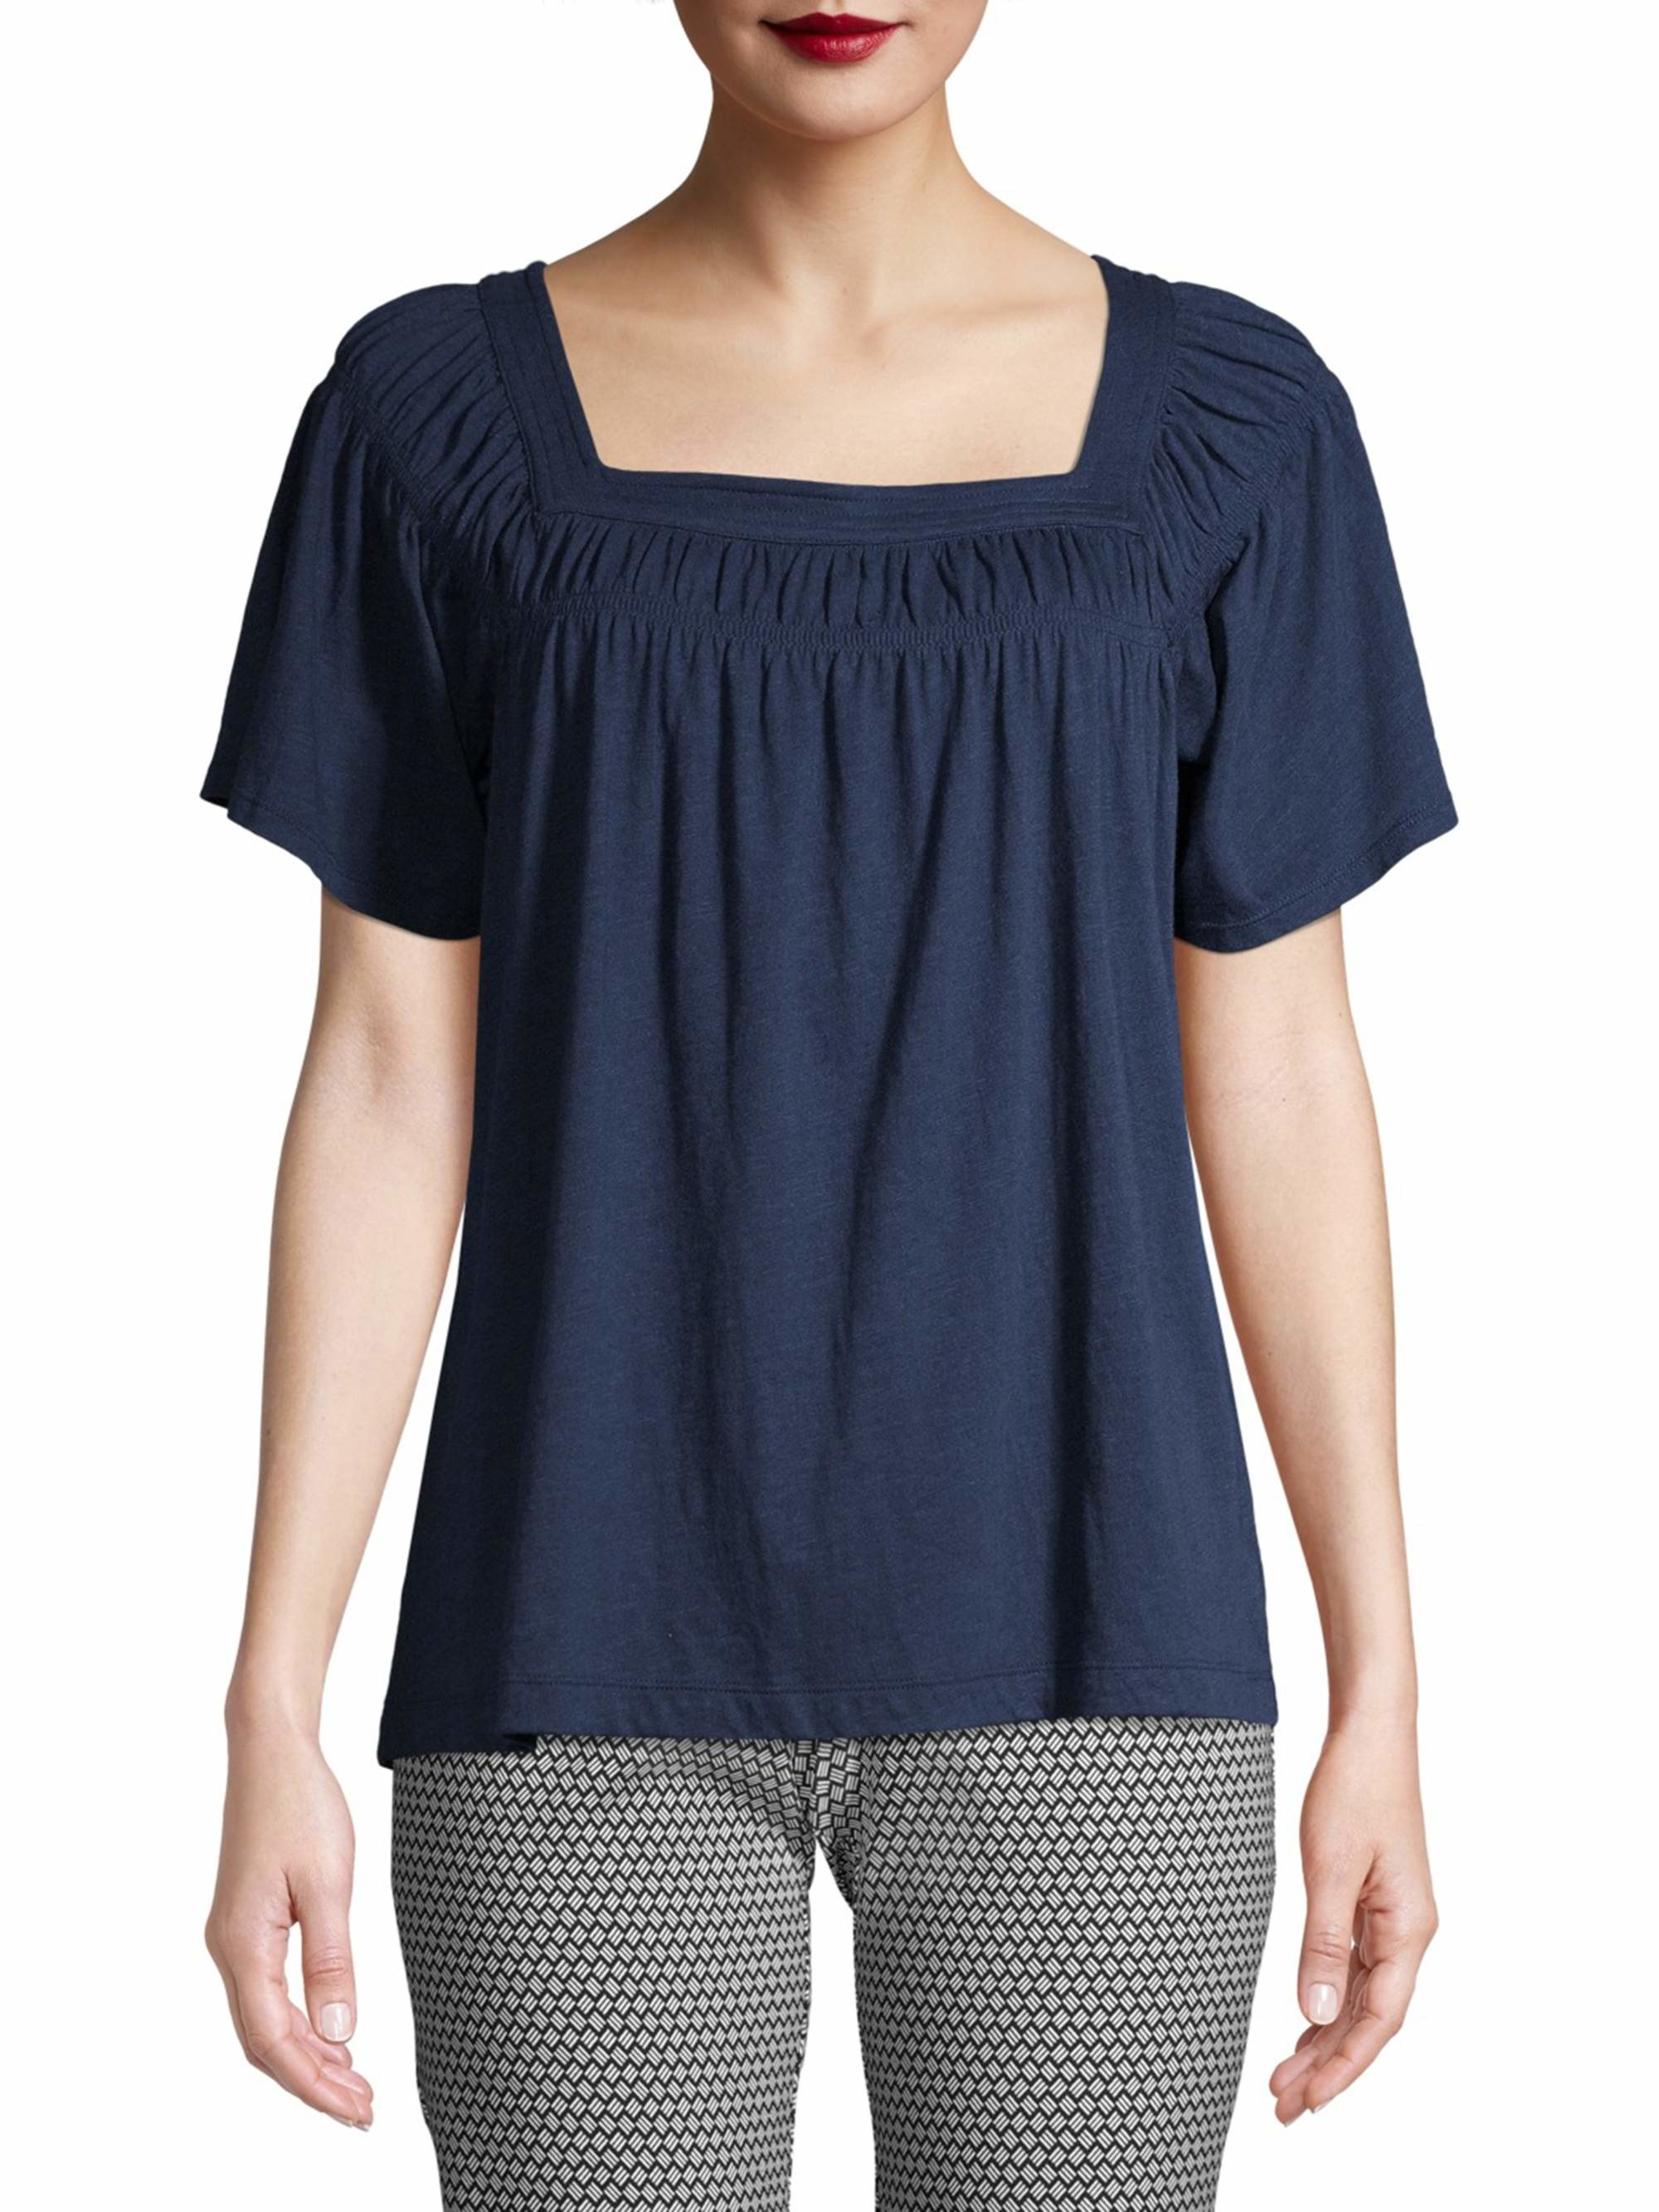 Model in a navy ruched square neck tee